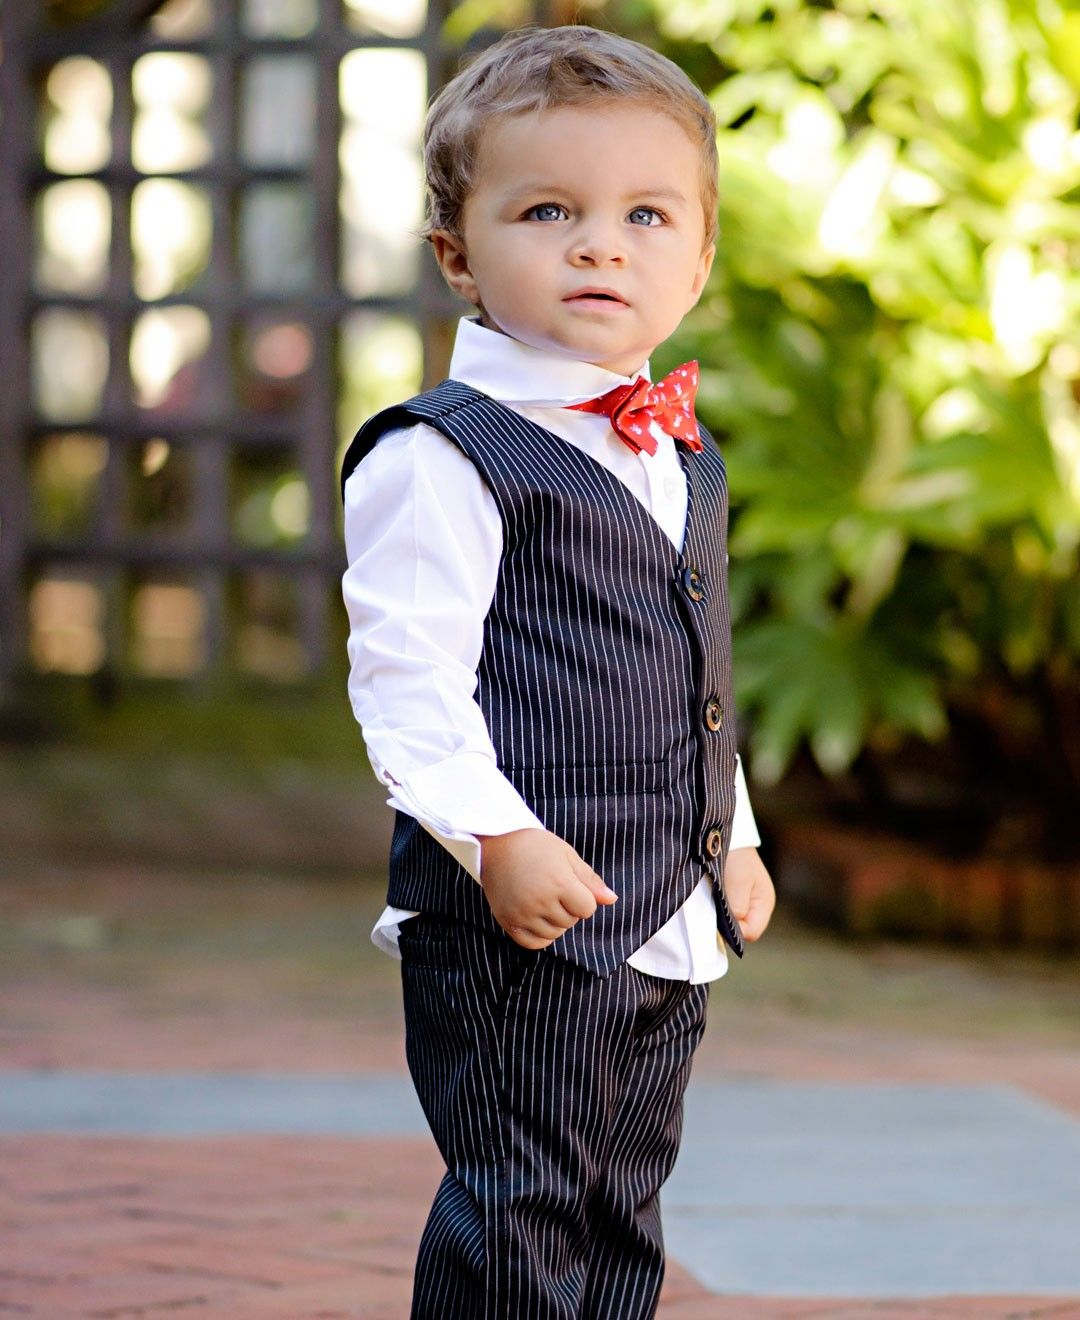 wholesale baby boys shirts toddler button up shirts infant boy toddlers toddler dress. Black Bedroom Furniture Sets. Home Design Ideas